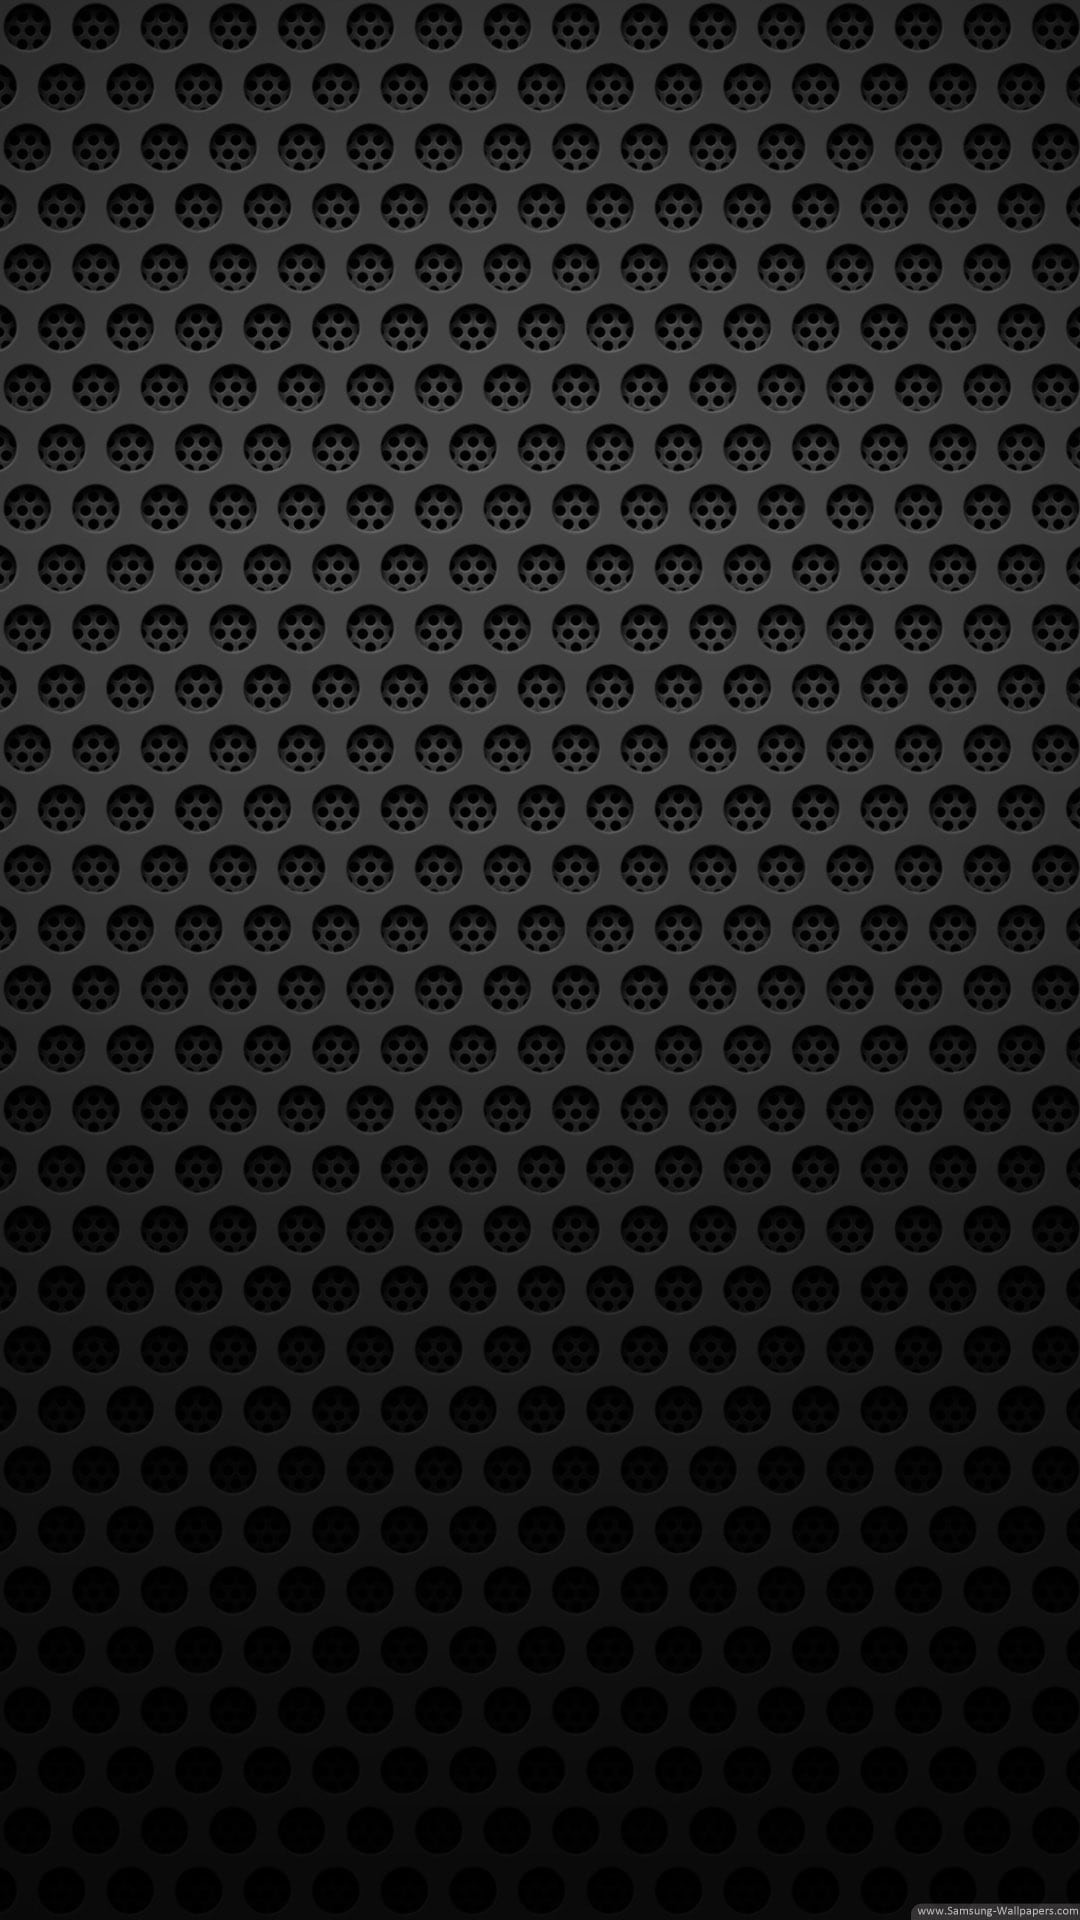 Samsung Galaxy S5 Black Wallpaper (88+ images)